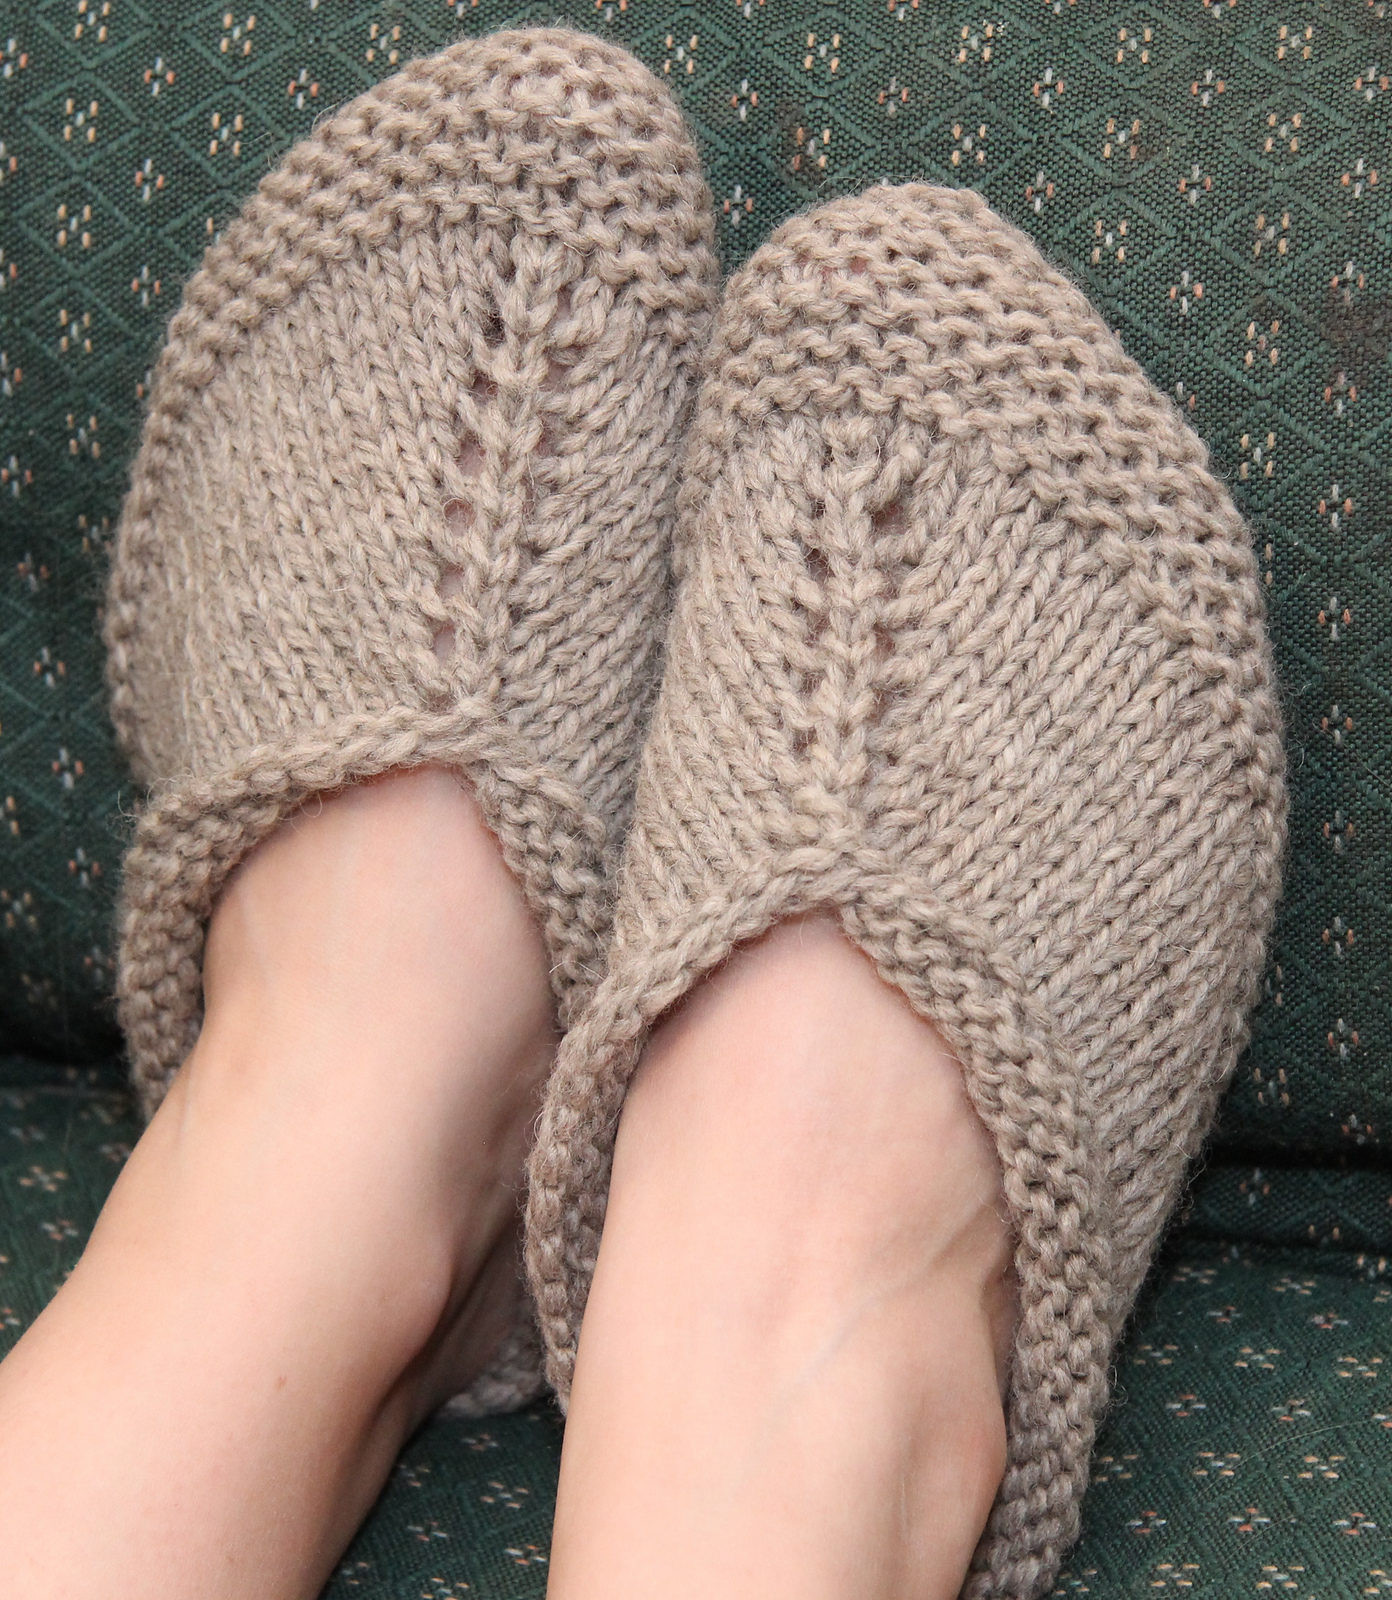 Easy Knitting Patterns Inspirational Easy Slipper Knitting Patterns Of Superb 44 Ideas Easy Knitting Patterns